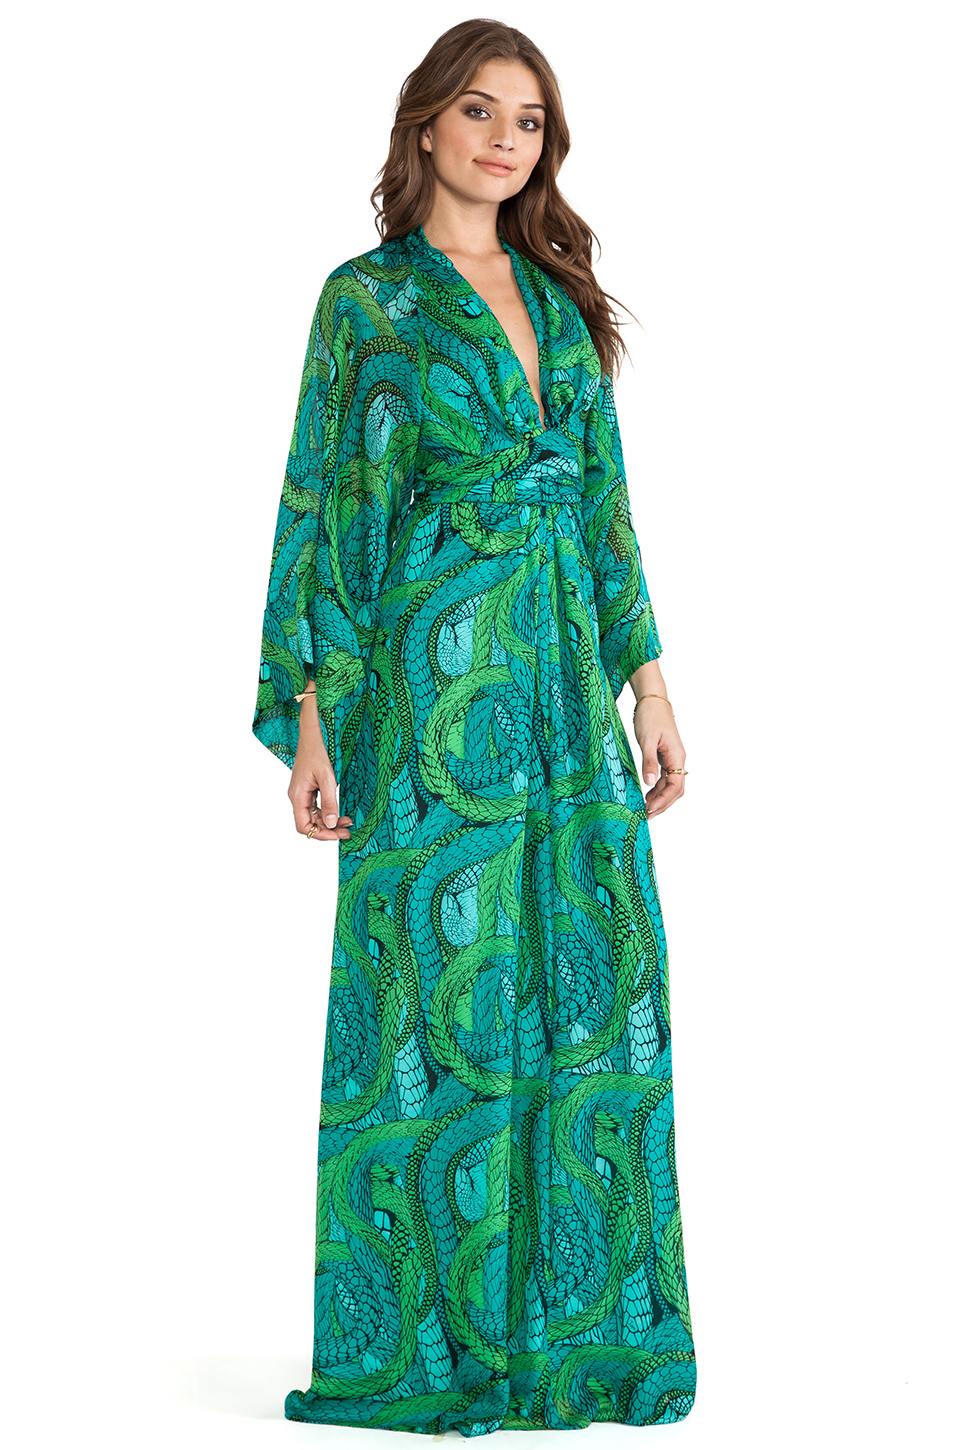 Issa Long Sleeve Printed Maxi Dress In Green Lyst